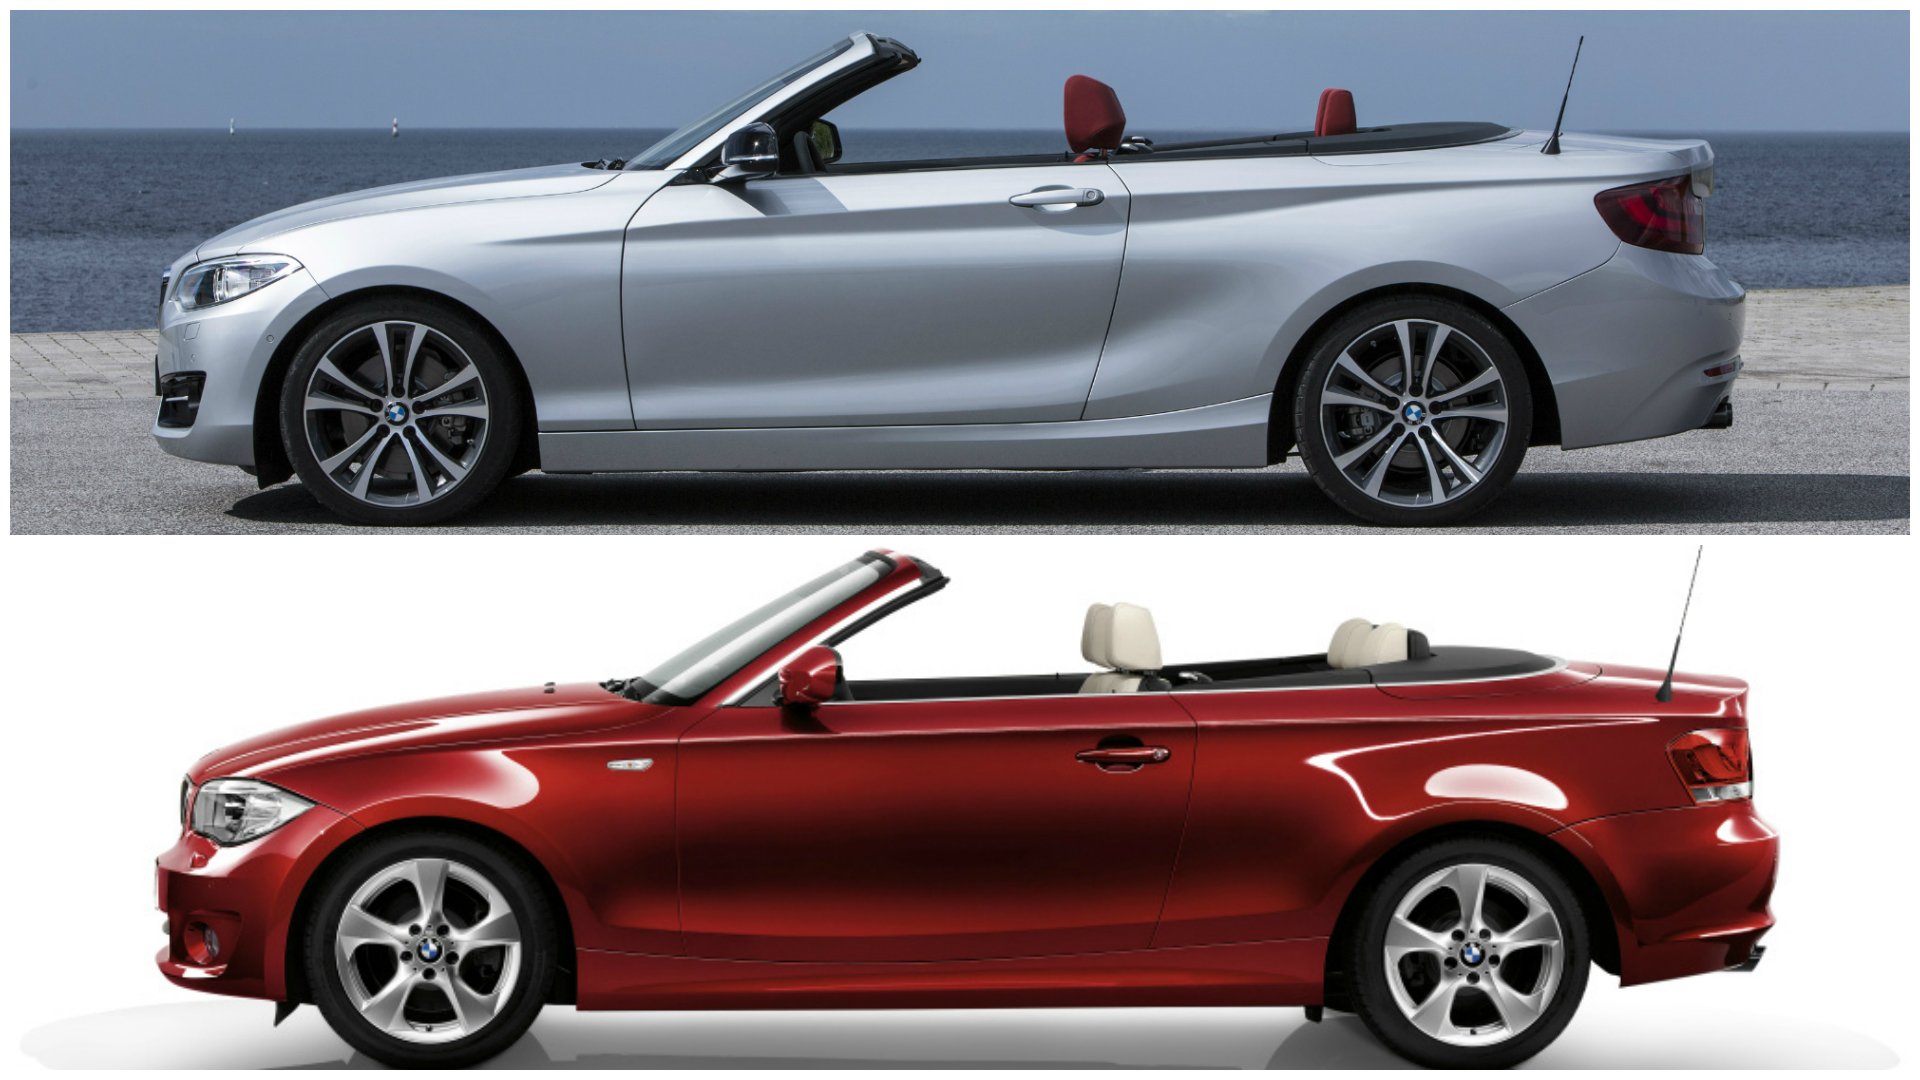 Bmw 2 Series Length Photo Comparison Bmw 2 Series Convertible Vs 1 Series